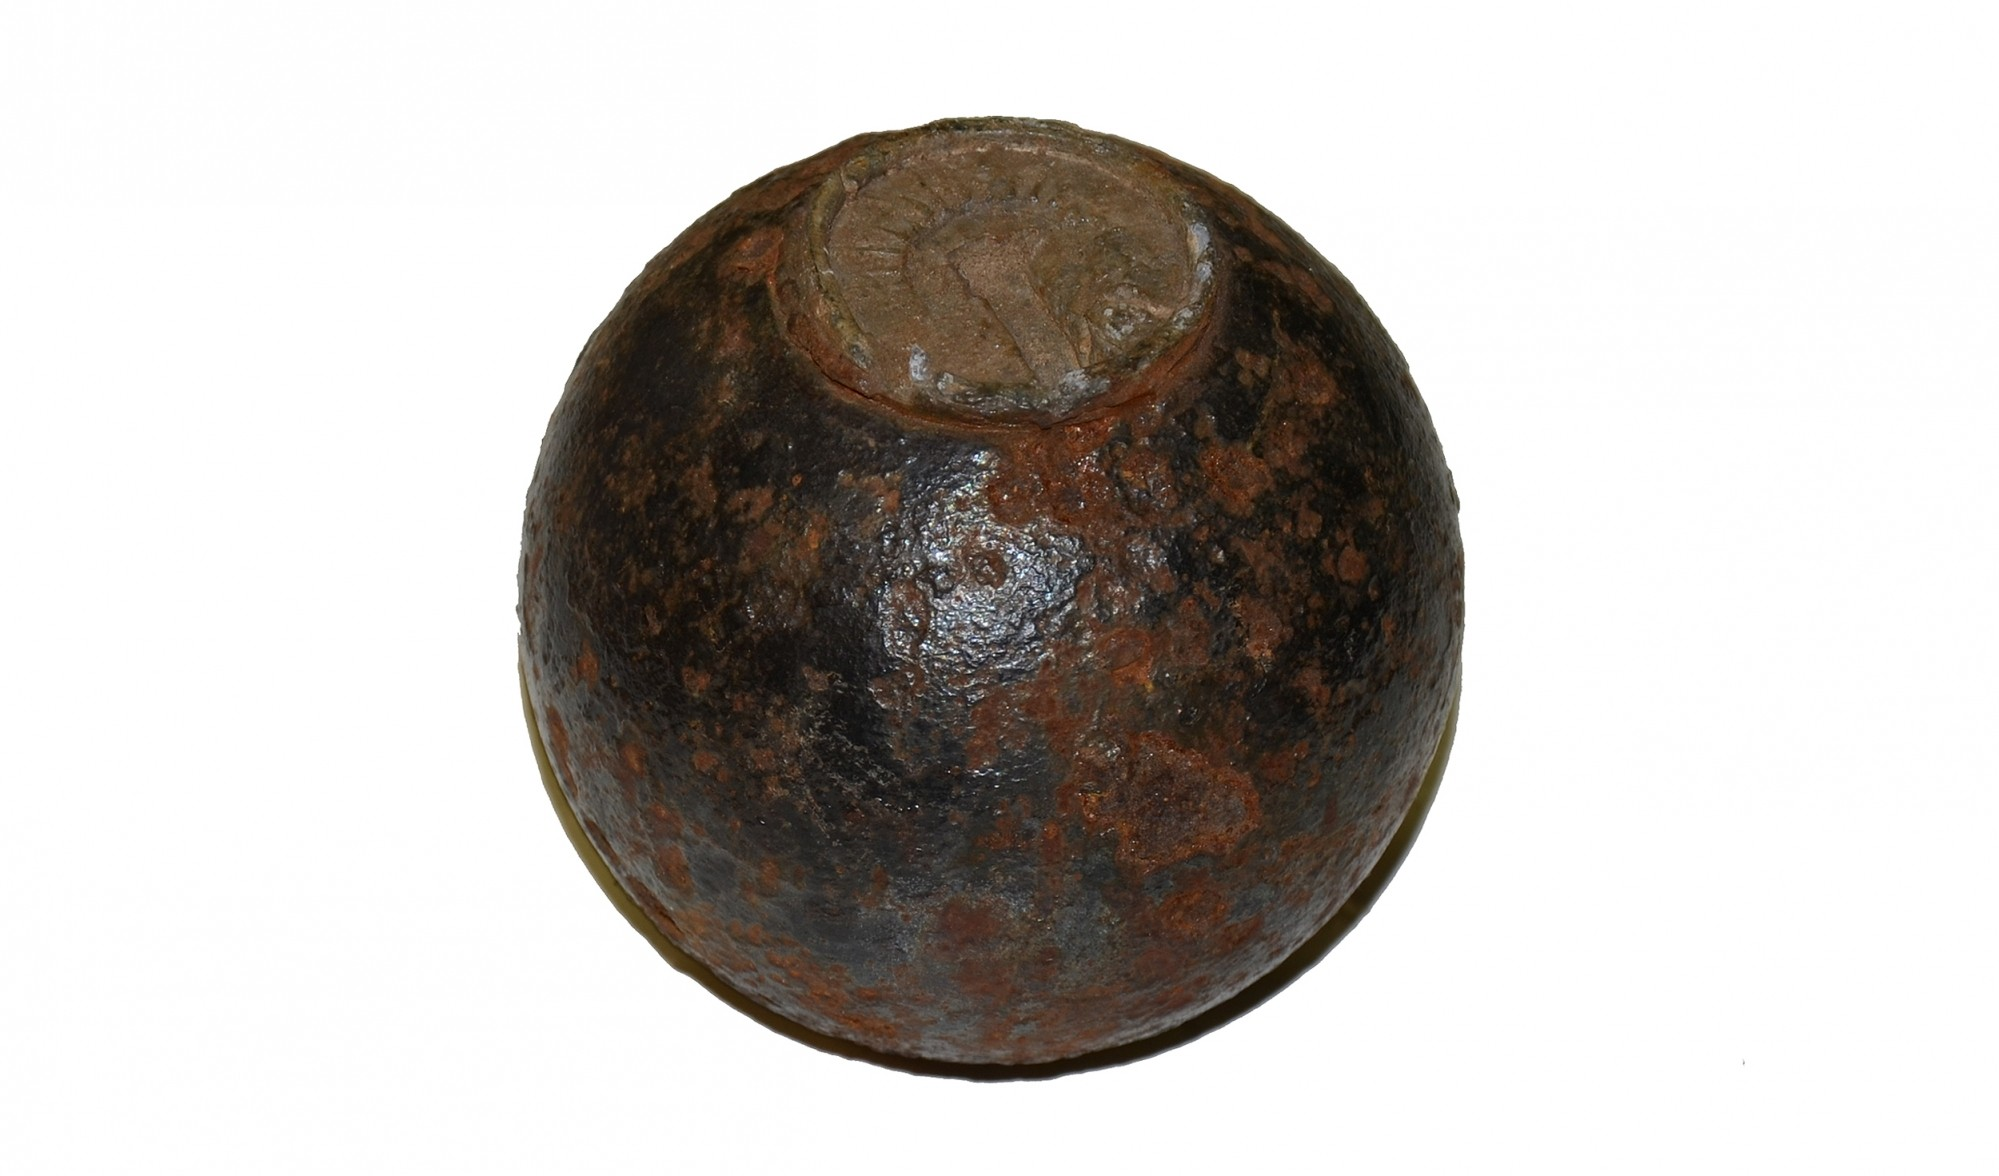 CONFEDERATE 3.67 INCH 6 POUNDER SPHERICAL SHELL WITH COPY OF BORMANN FUSE